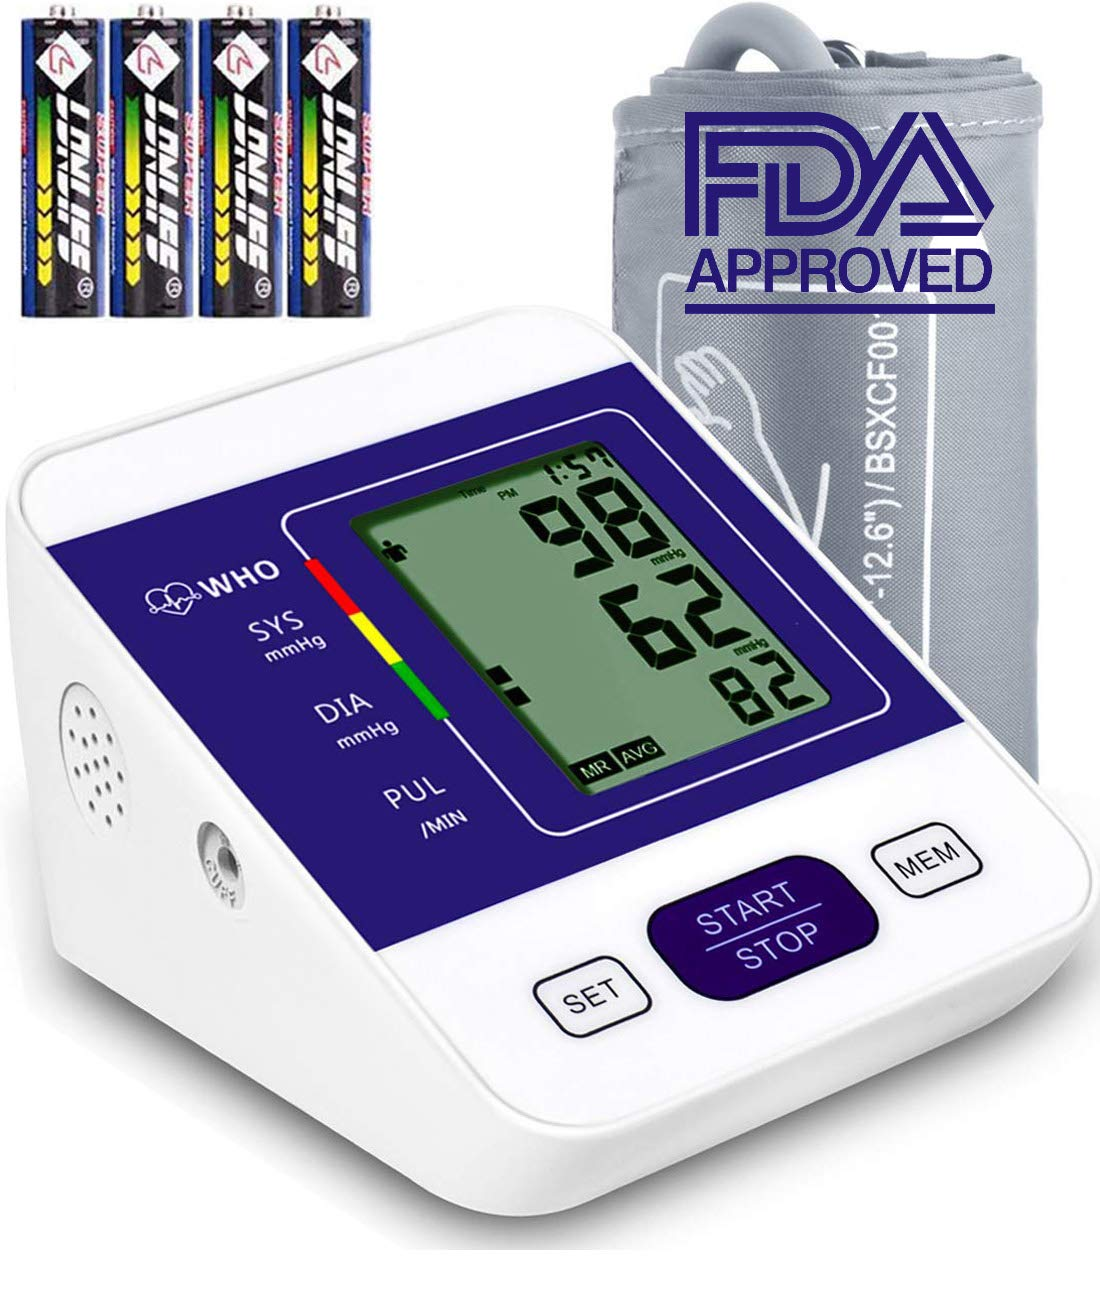 Blood Pressure Monitor Upper Arm RobotsDeal with Large LCD Display,Digital Upper Arm Automatic Measure Blood Pressure and Heart Rate Pulse,2 Sets of User Memories Battery Included Blue